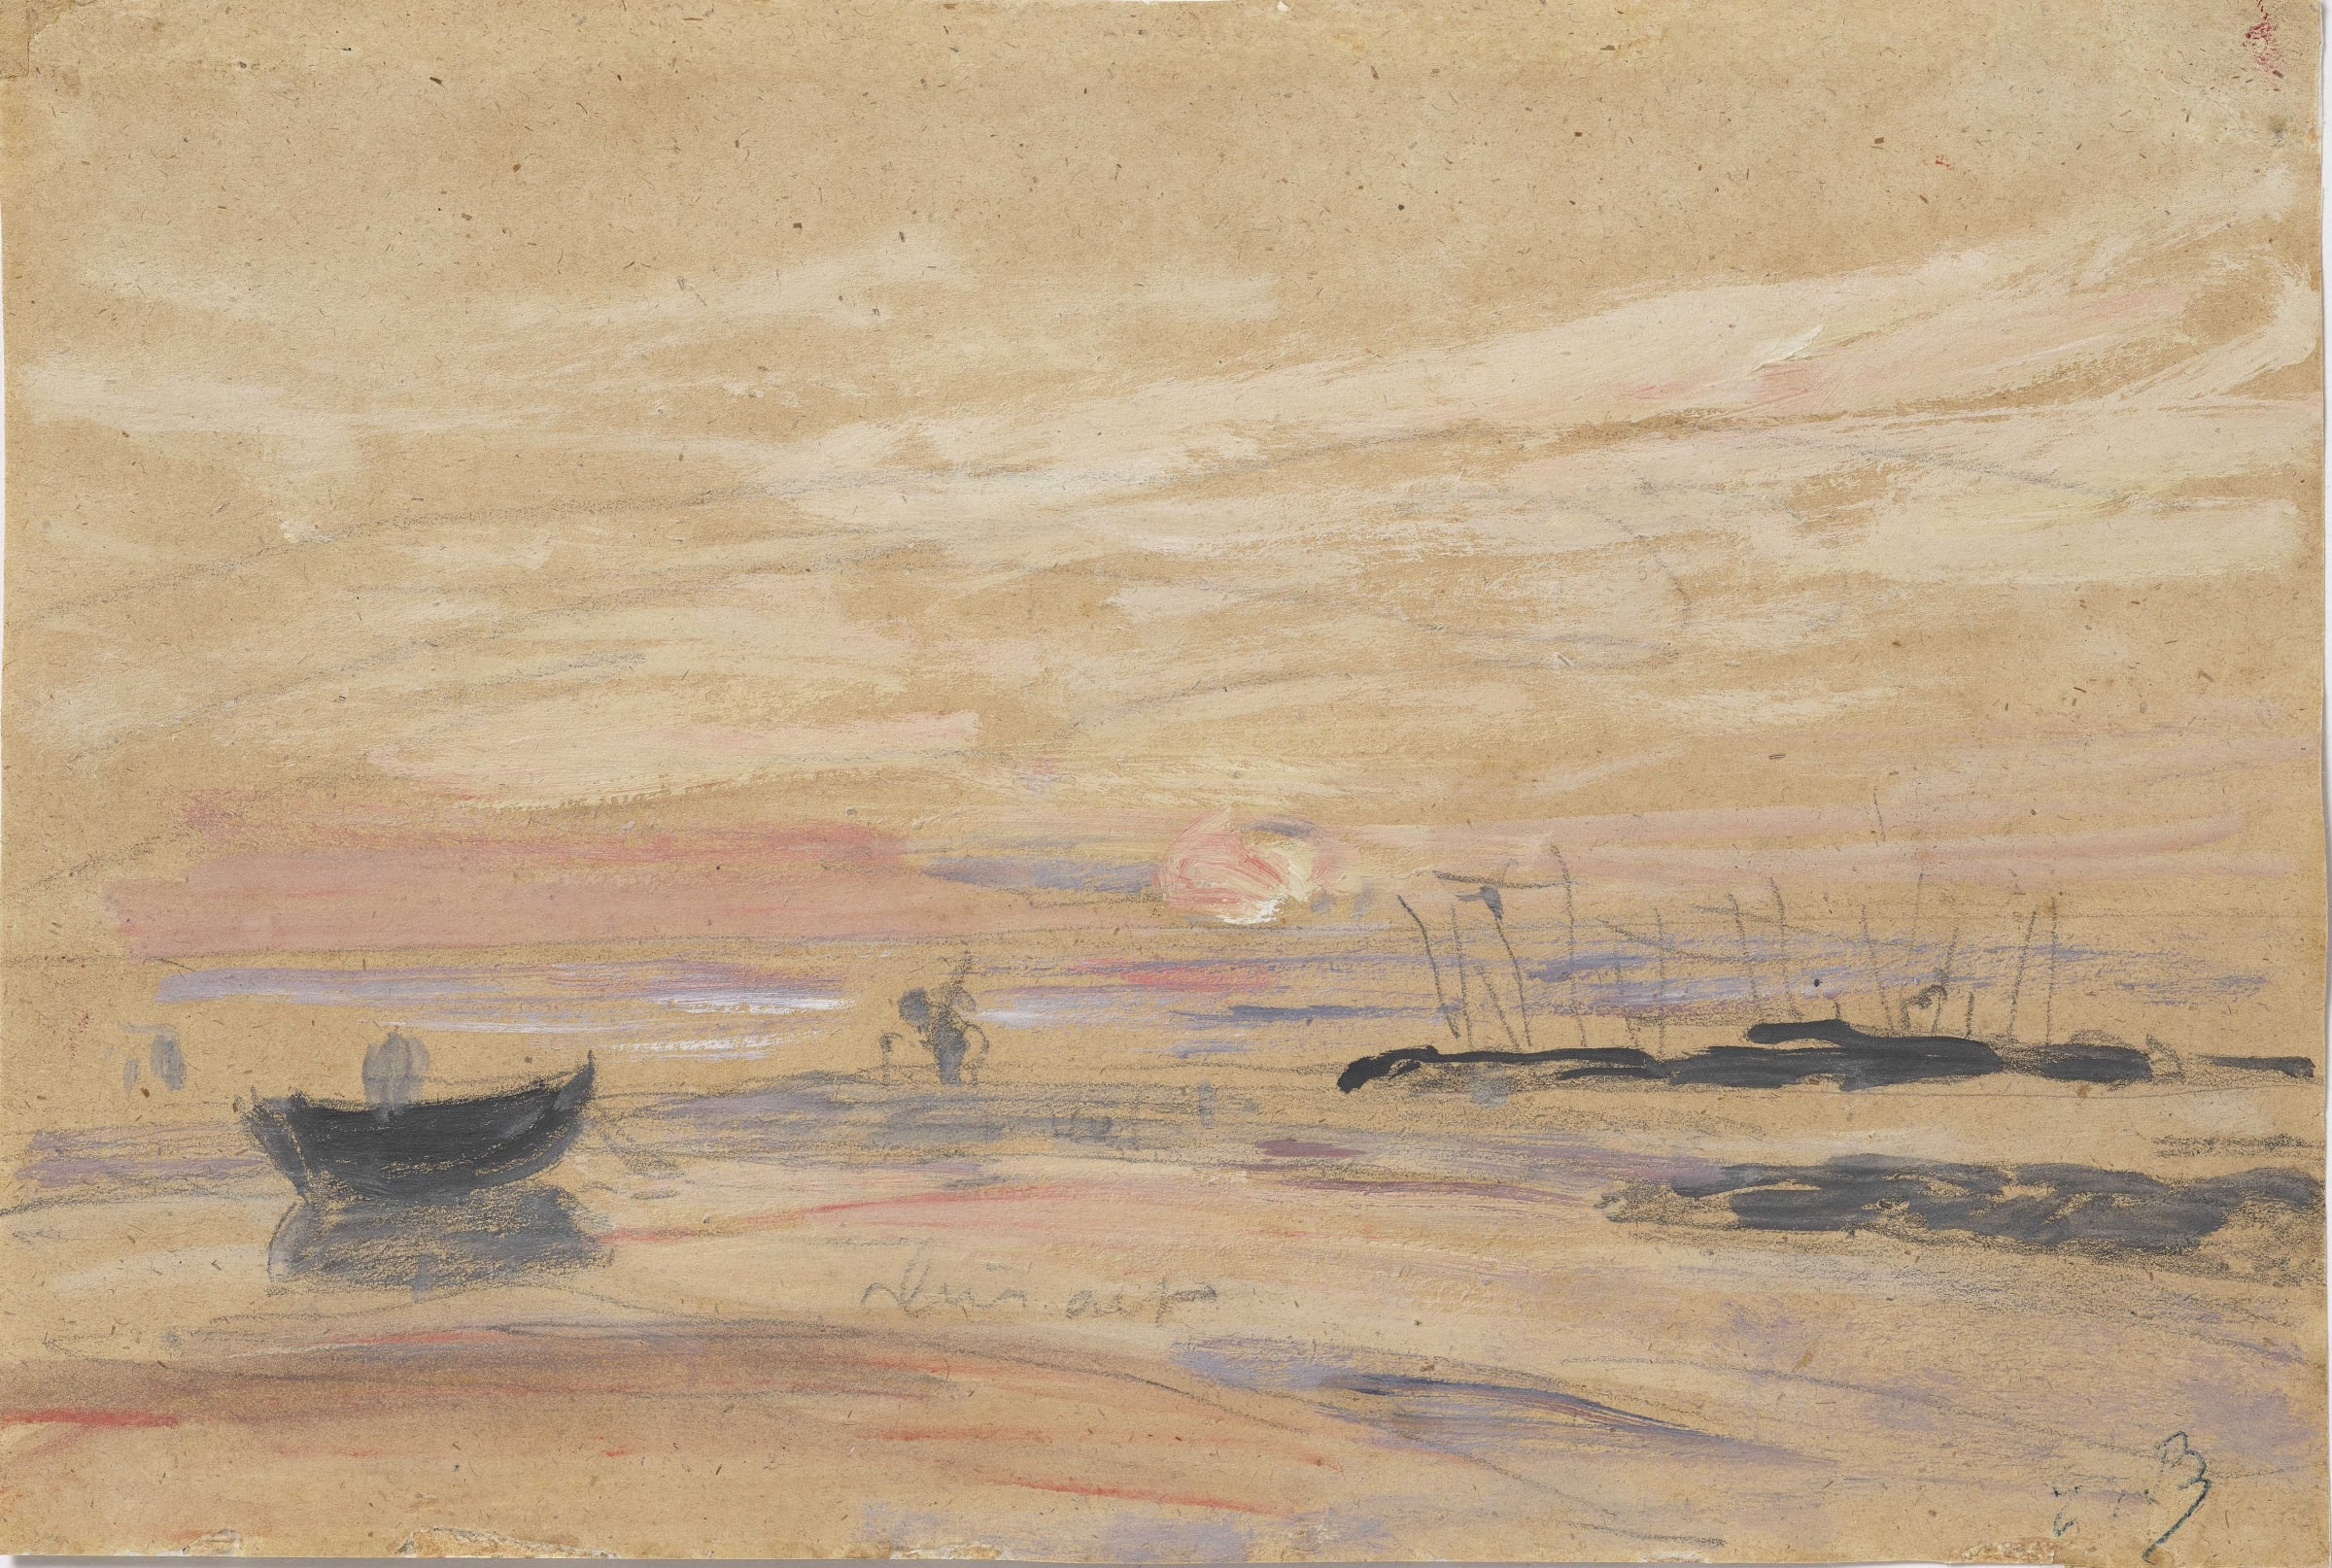 <span class=&#34;link fancybox-details-link&#34;><a href=&#34;/artists/29-eugne-boudin/works/9437-eug-ne-boudin-coucher-de-soleil-sur-le-rivage-c.-1885-1890/&#34;>View Detail Page</a></span><div class=&#34;artist&#34;><span class=&#34;artist&#34;><strong>Eugène Boudin</strong></span></div><div class=&#34;title&#34;><em>Coucher de soleil sur le rivage</em>, c. 1885-1890</div><div class=&#34;signed_and_dated&#34;>Stamped with the initials lower right</div><div class=&#34;medium&#34;>Oil and pencil on paper</div><div class=&#34;dimensions&#34;>14.6 x 21.8 cm<br /> 5 11/16 x 8 9/16 inches</div>